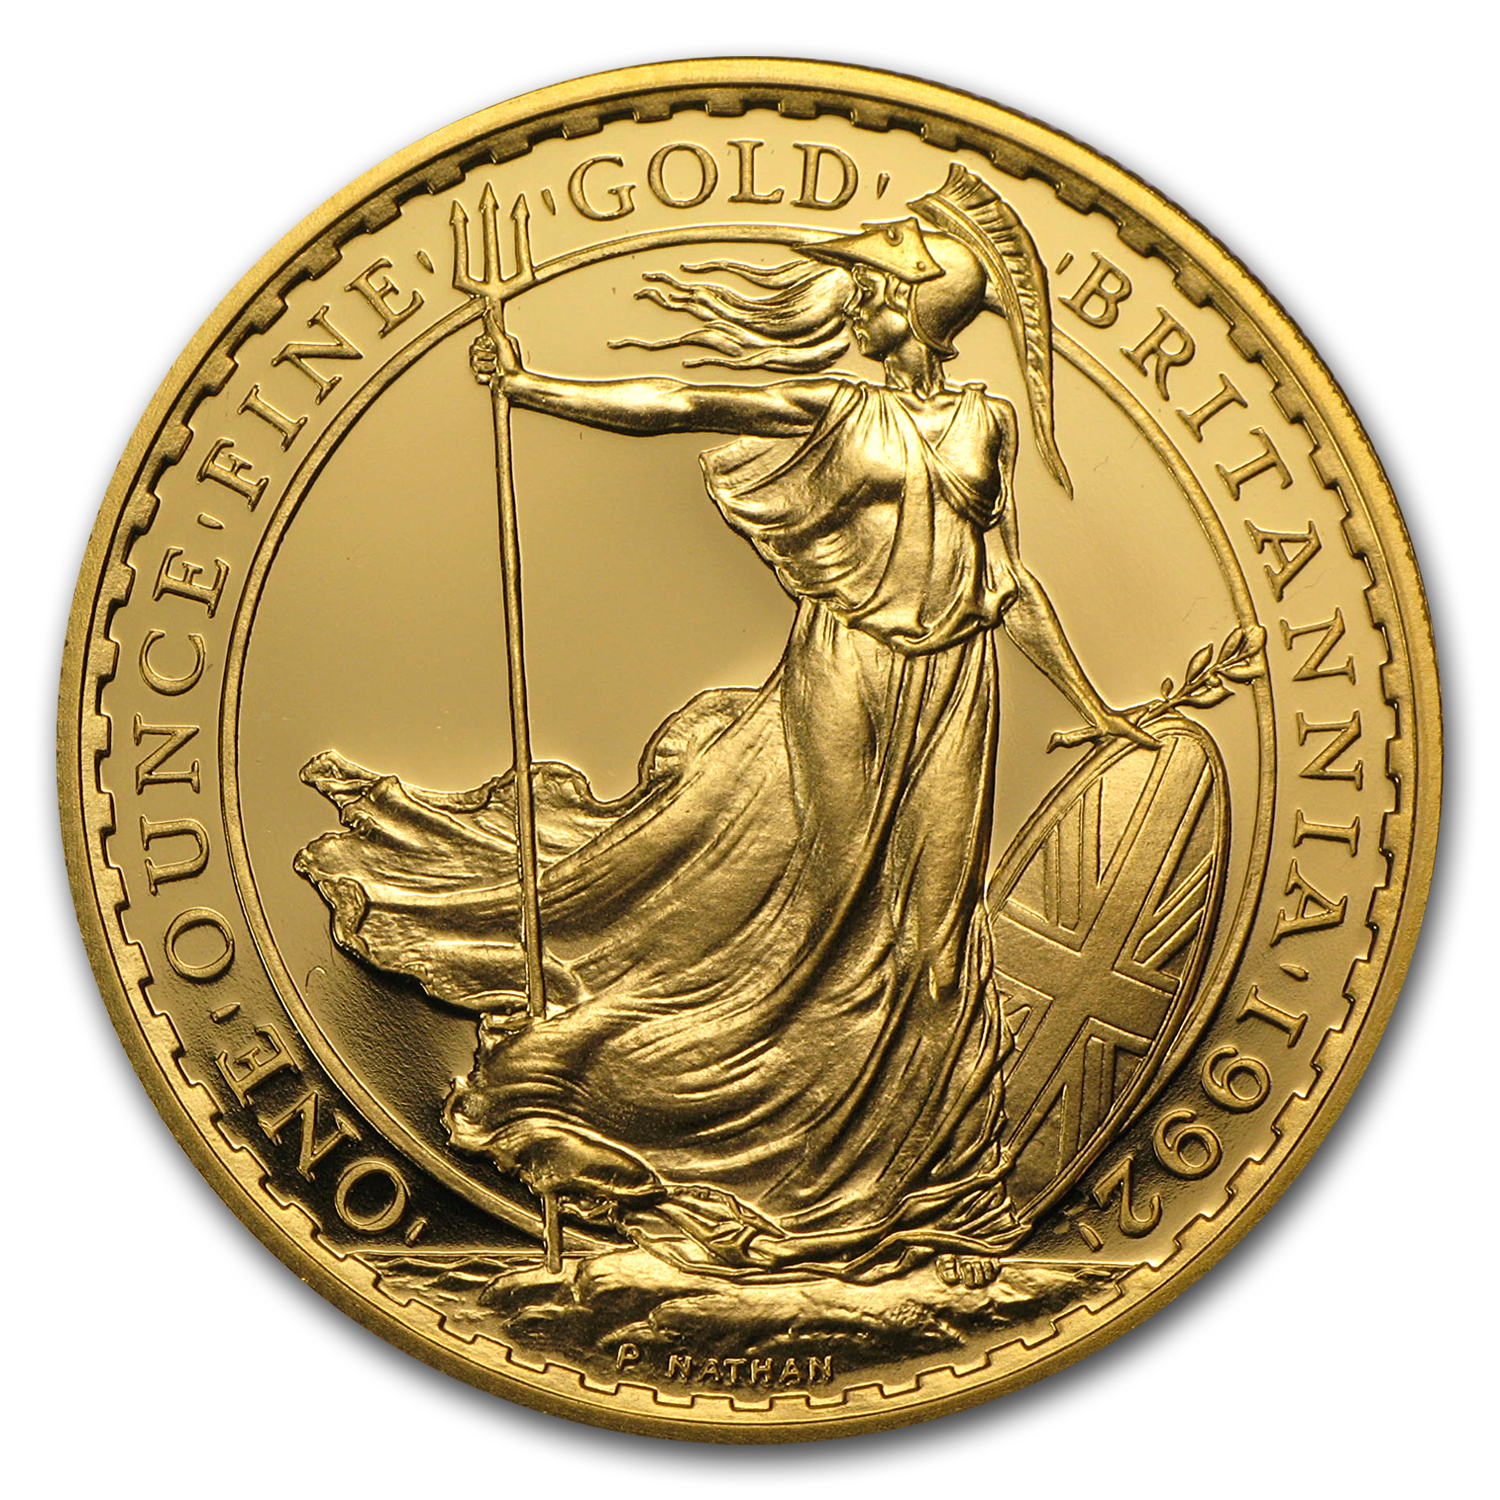 1992 1 oz Proof Gold Britannia